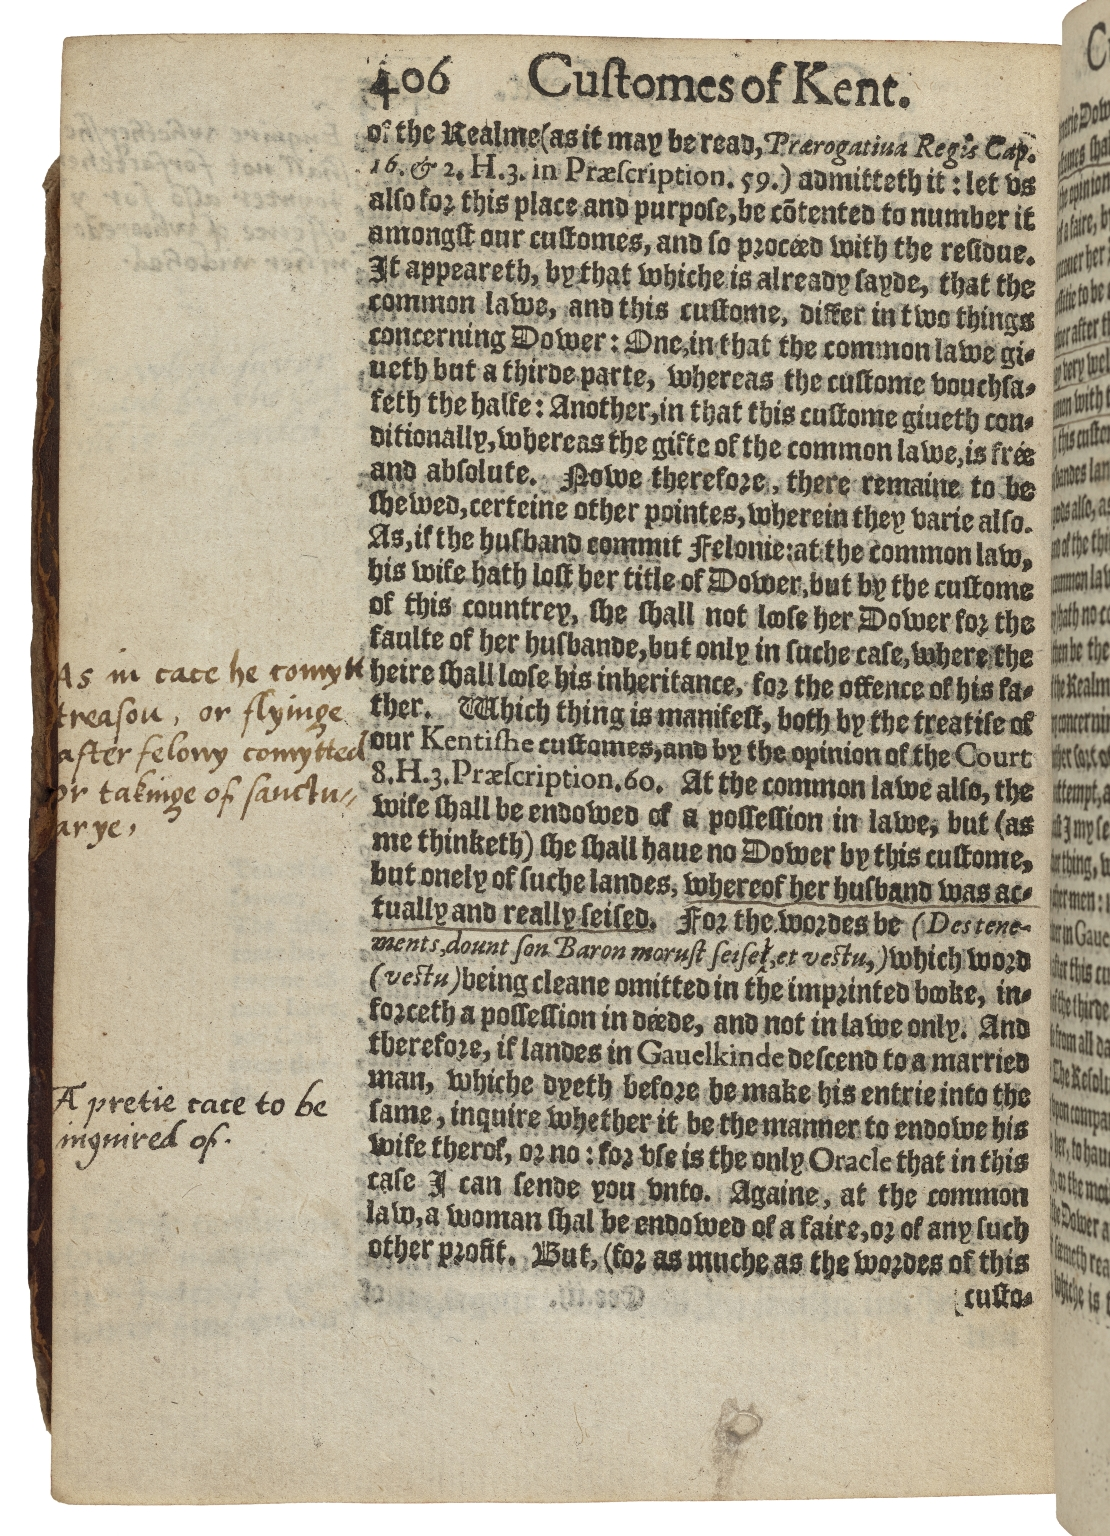 A perambulation of Kent : conteining the description, hystorie, and customes of that shyre / collected and written (for the most part) in the year 1570 by William Lambard of Lincolnes Inne gent., and nowe increased by the addition of some things which the authour him selfe hath obserued since that time.